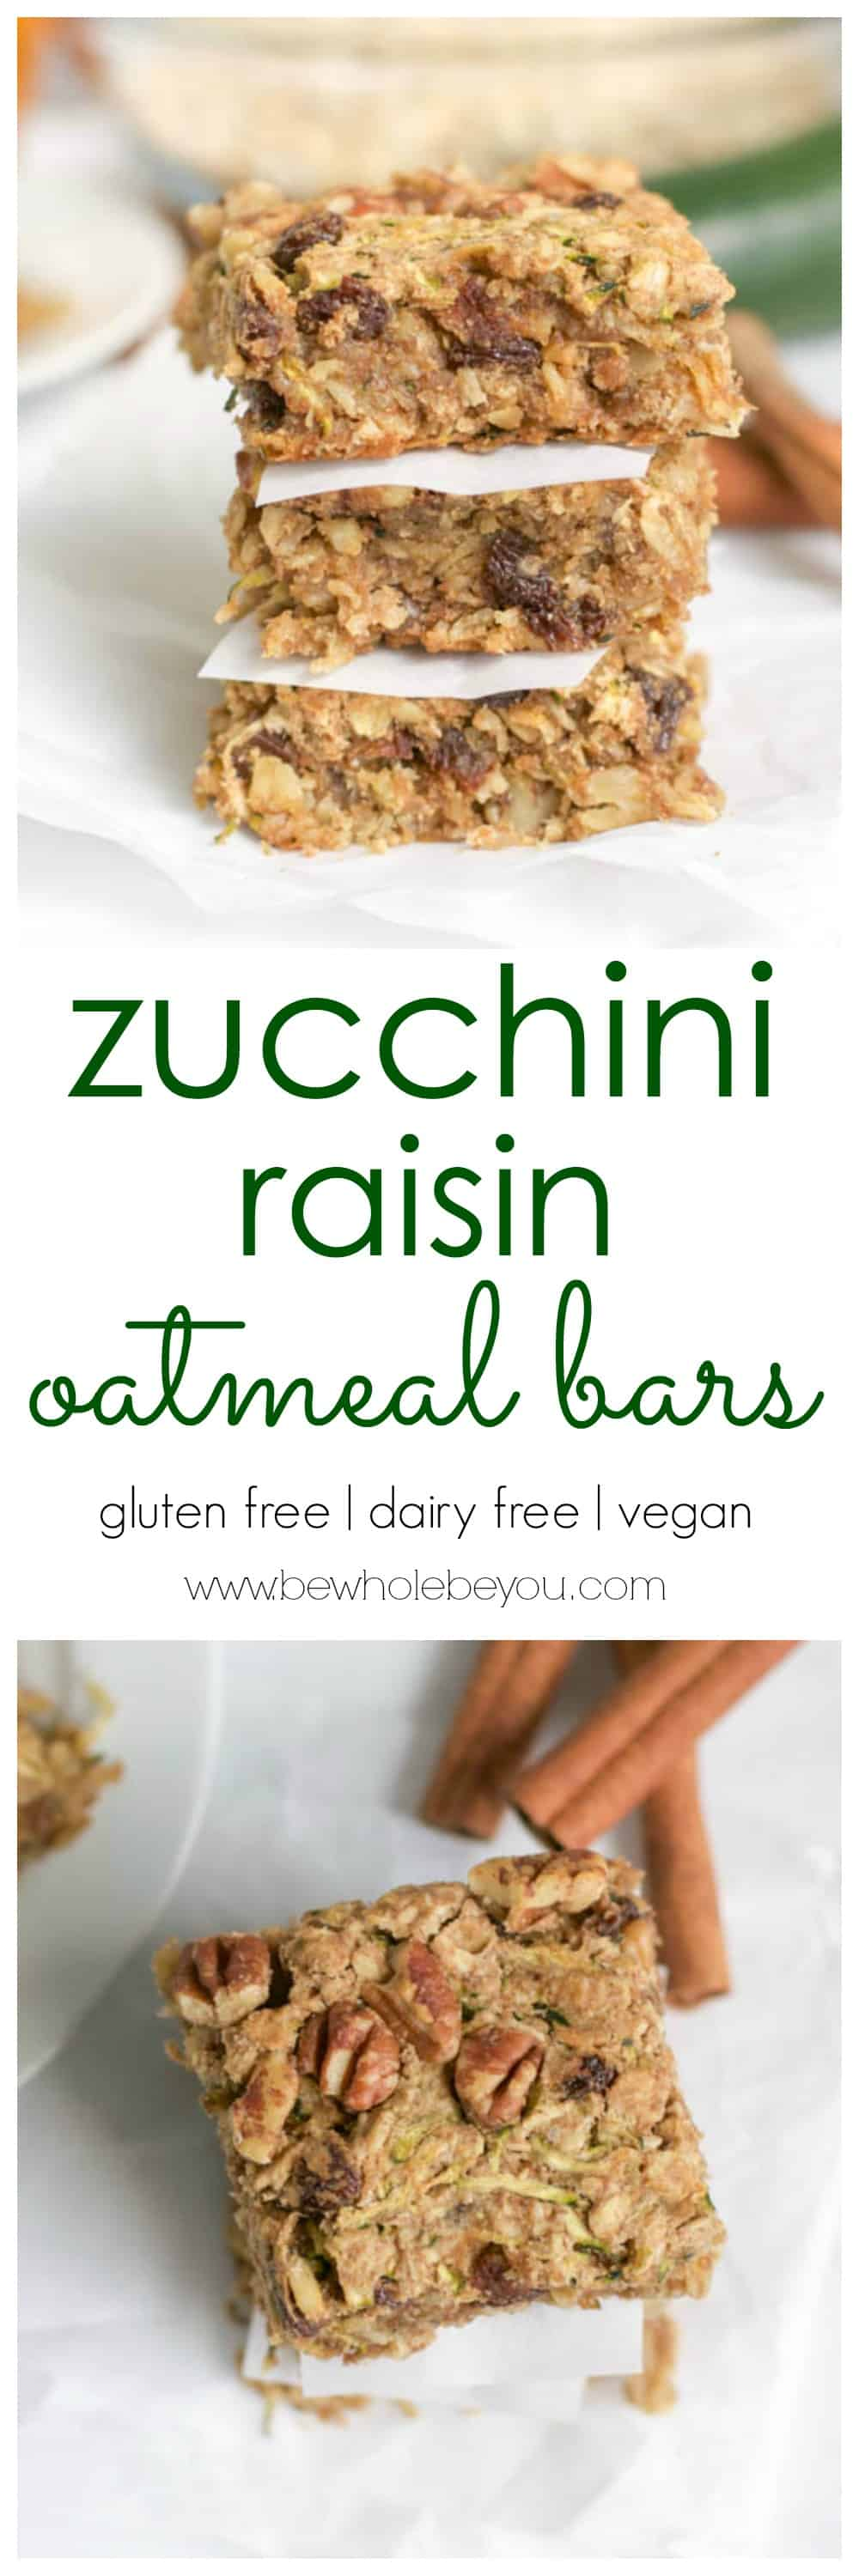 Zucchini Raisin Oatmeal Bars. Be Whole. Be You.